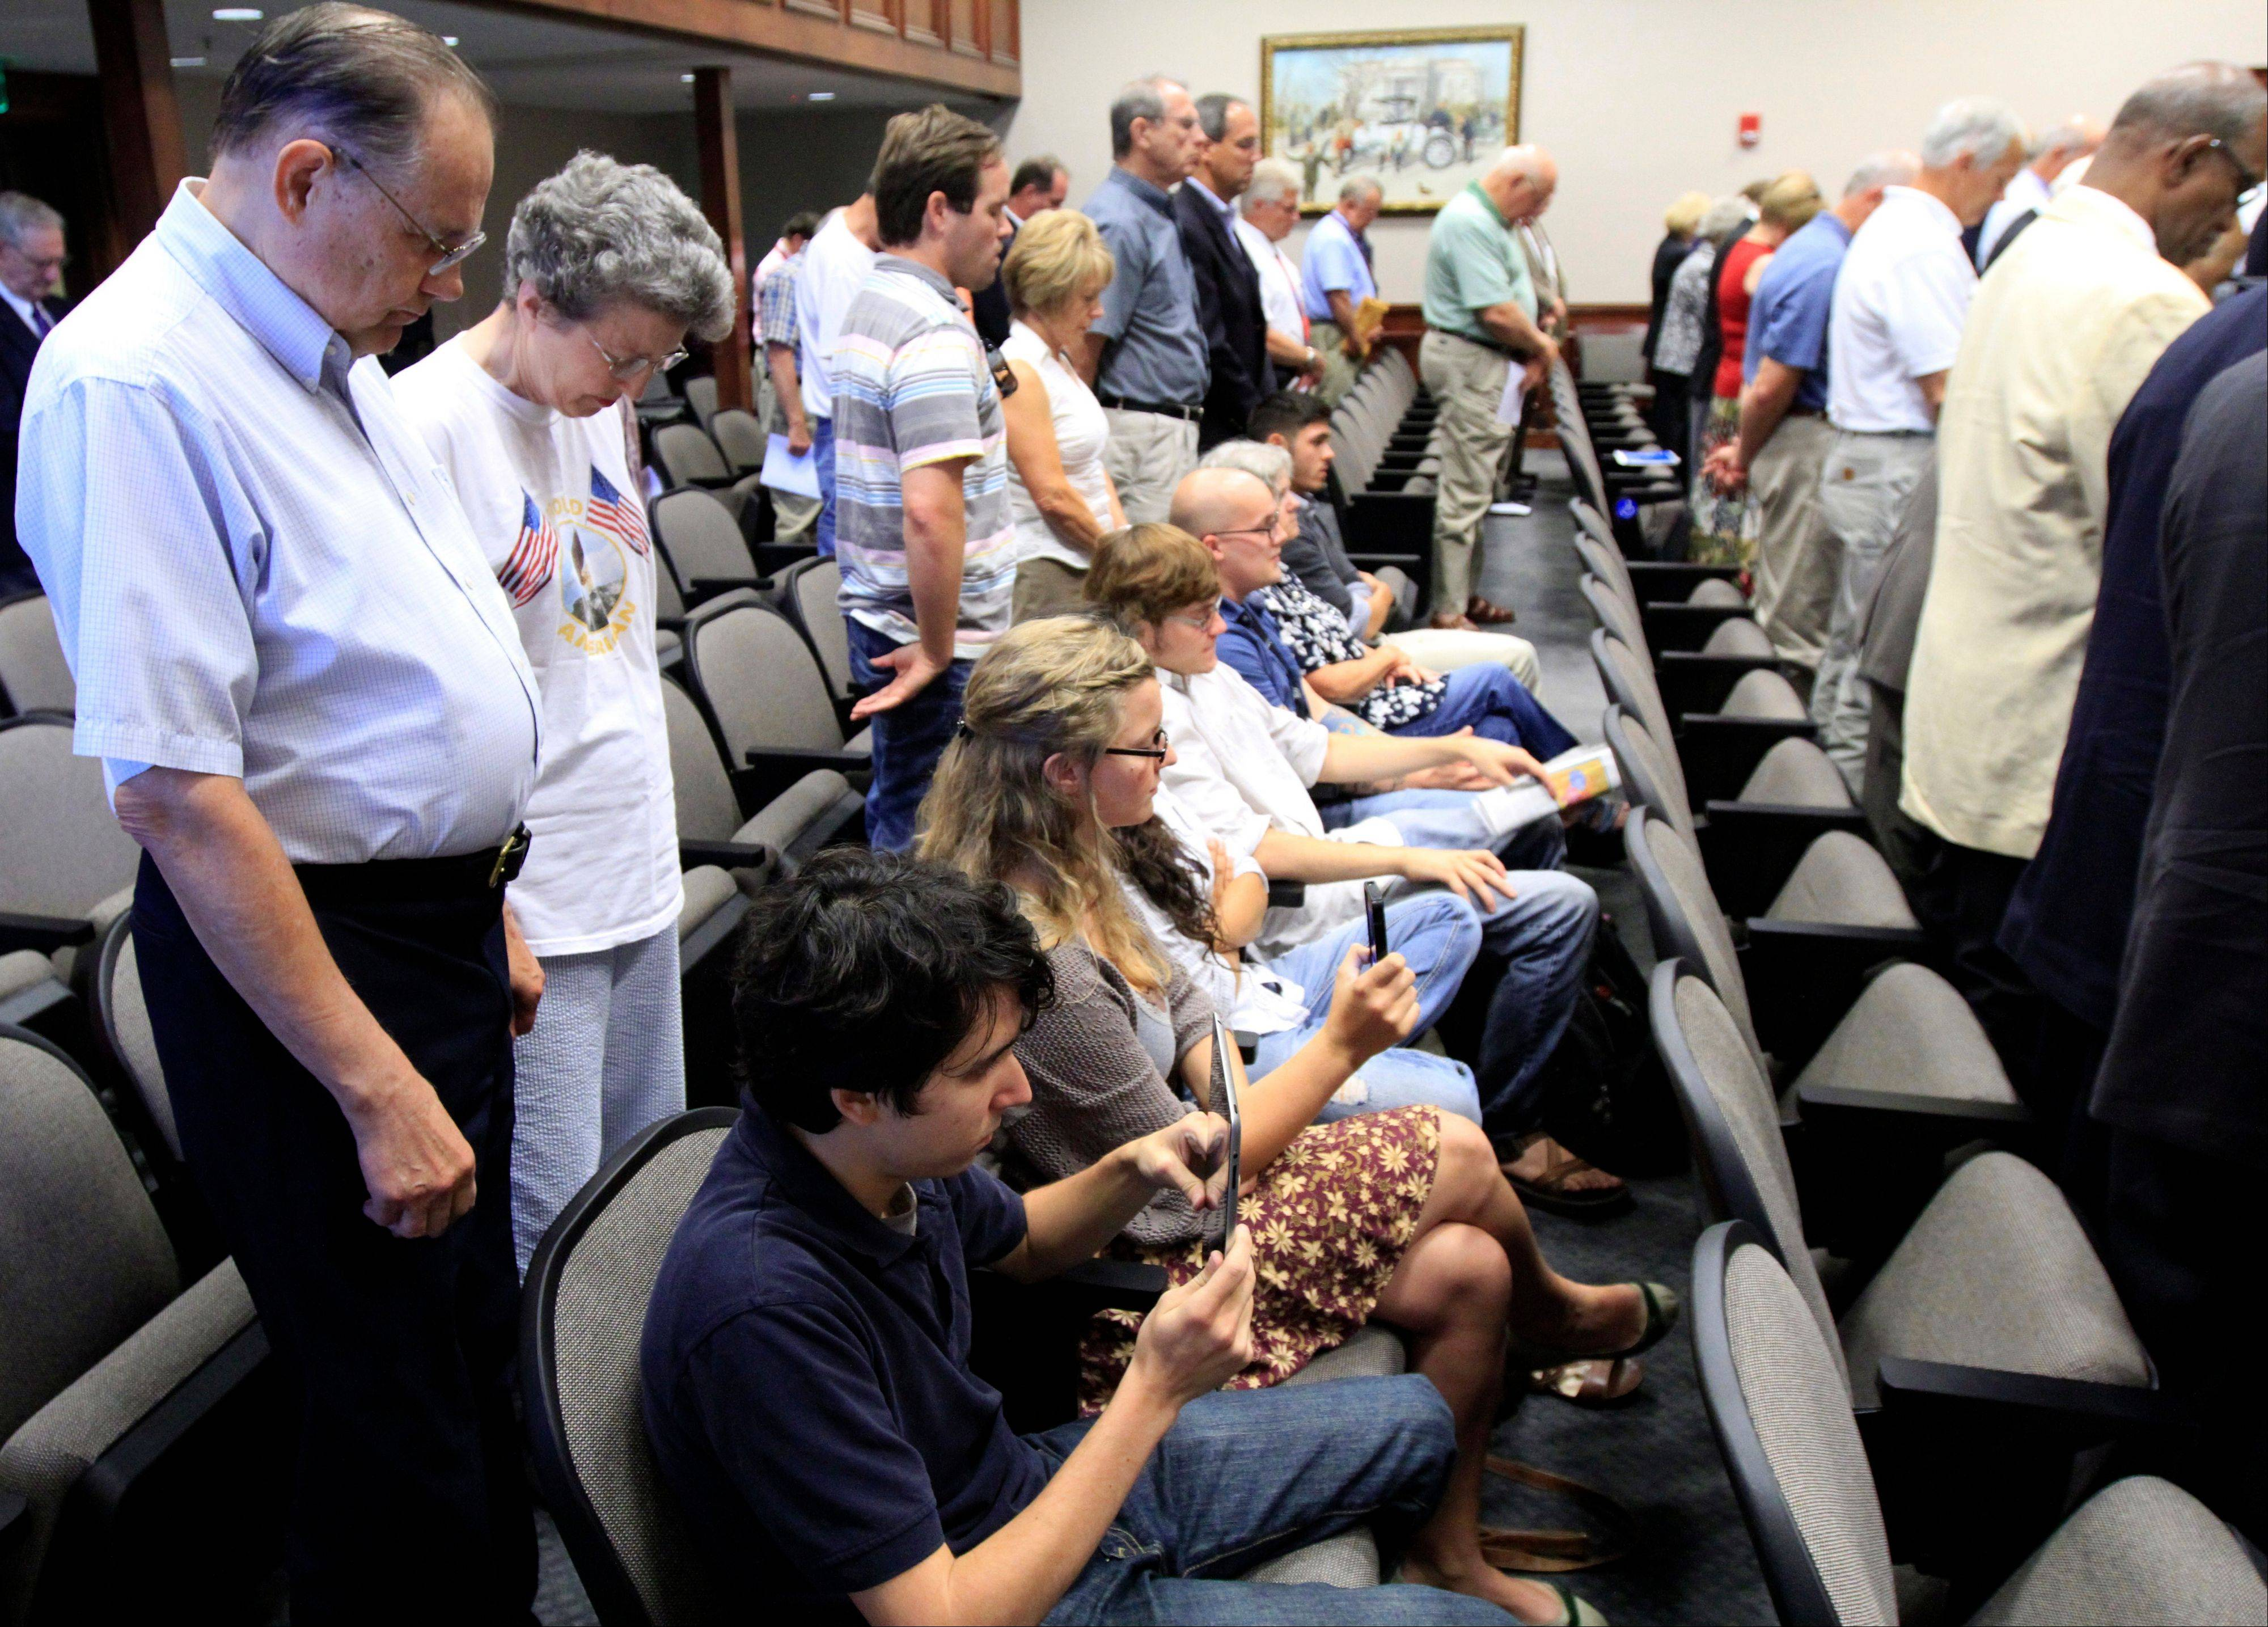 Protesters remain seated during an opening prayer during Hamilton County Commission meeting in Chattanooga, Tenn.